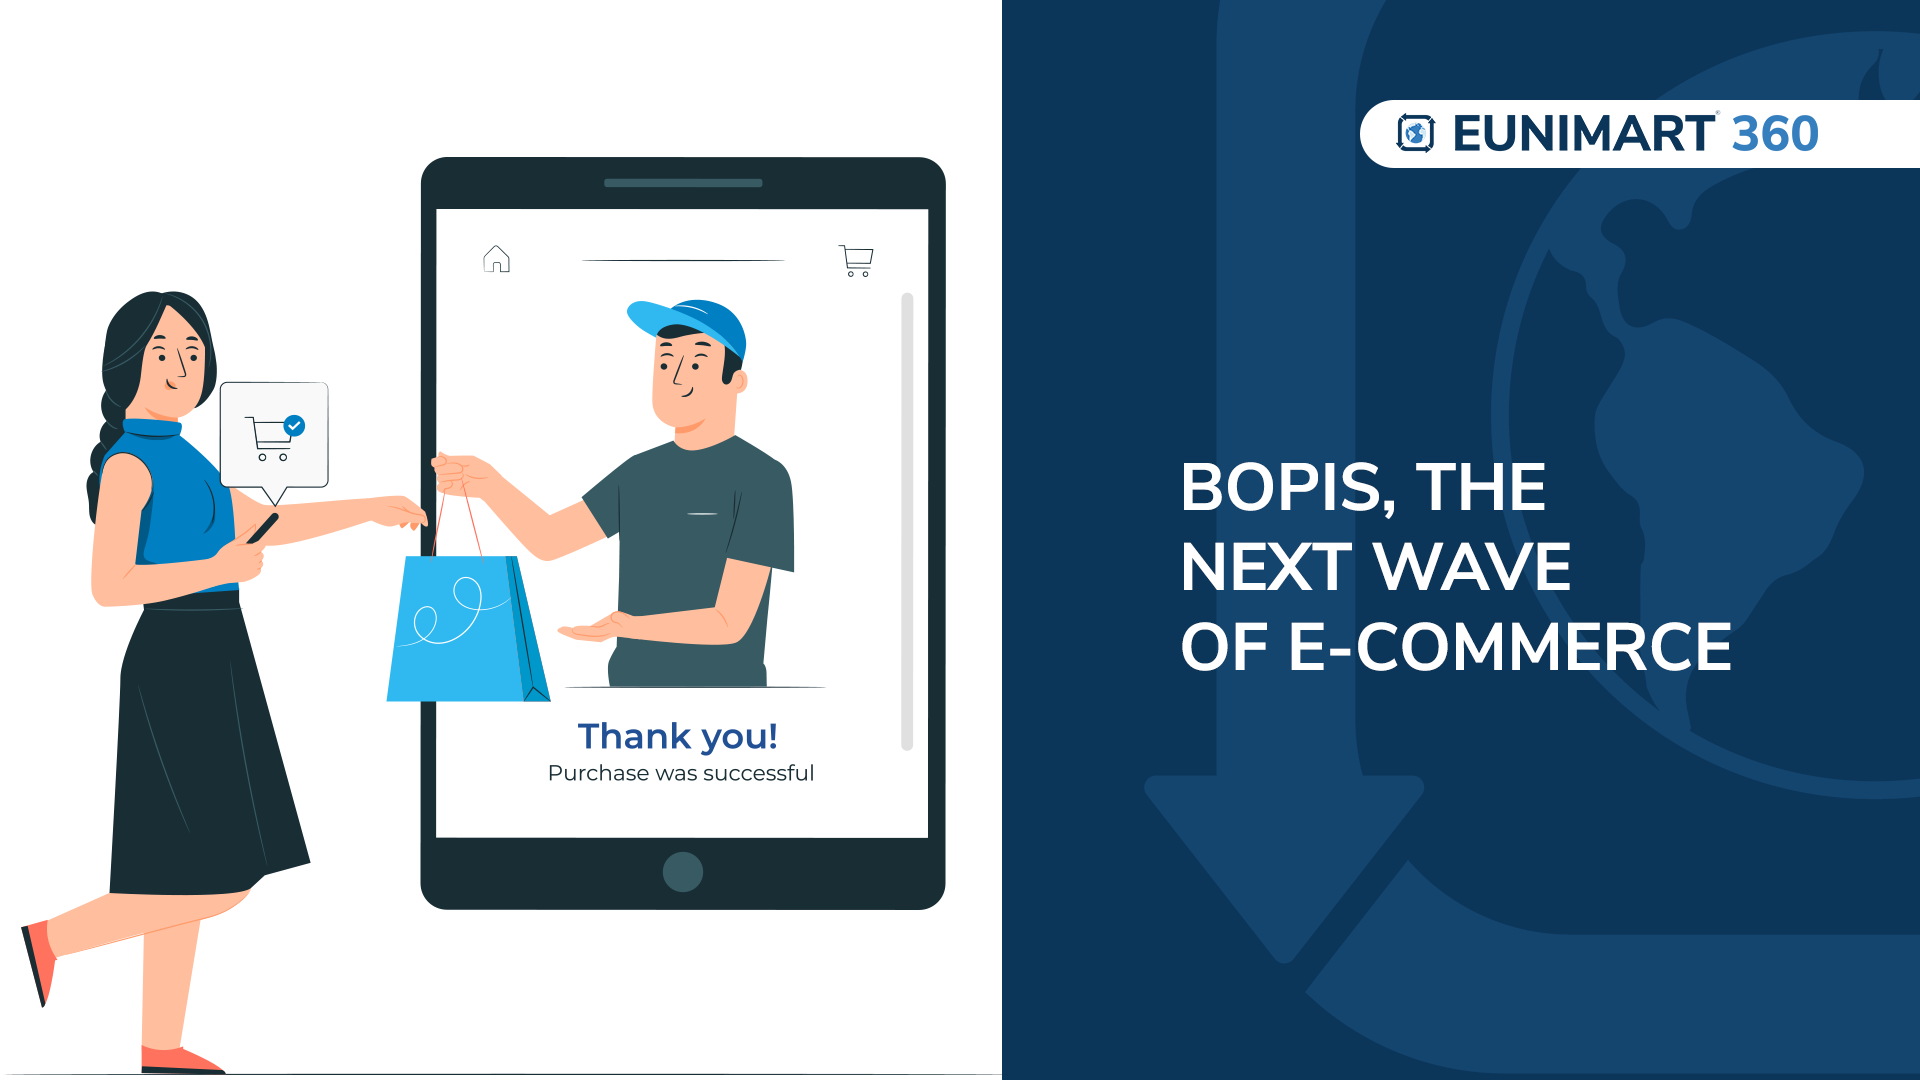 BOPIS, the next wave of E-commerce